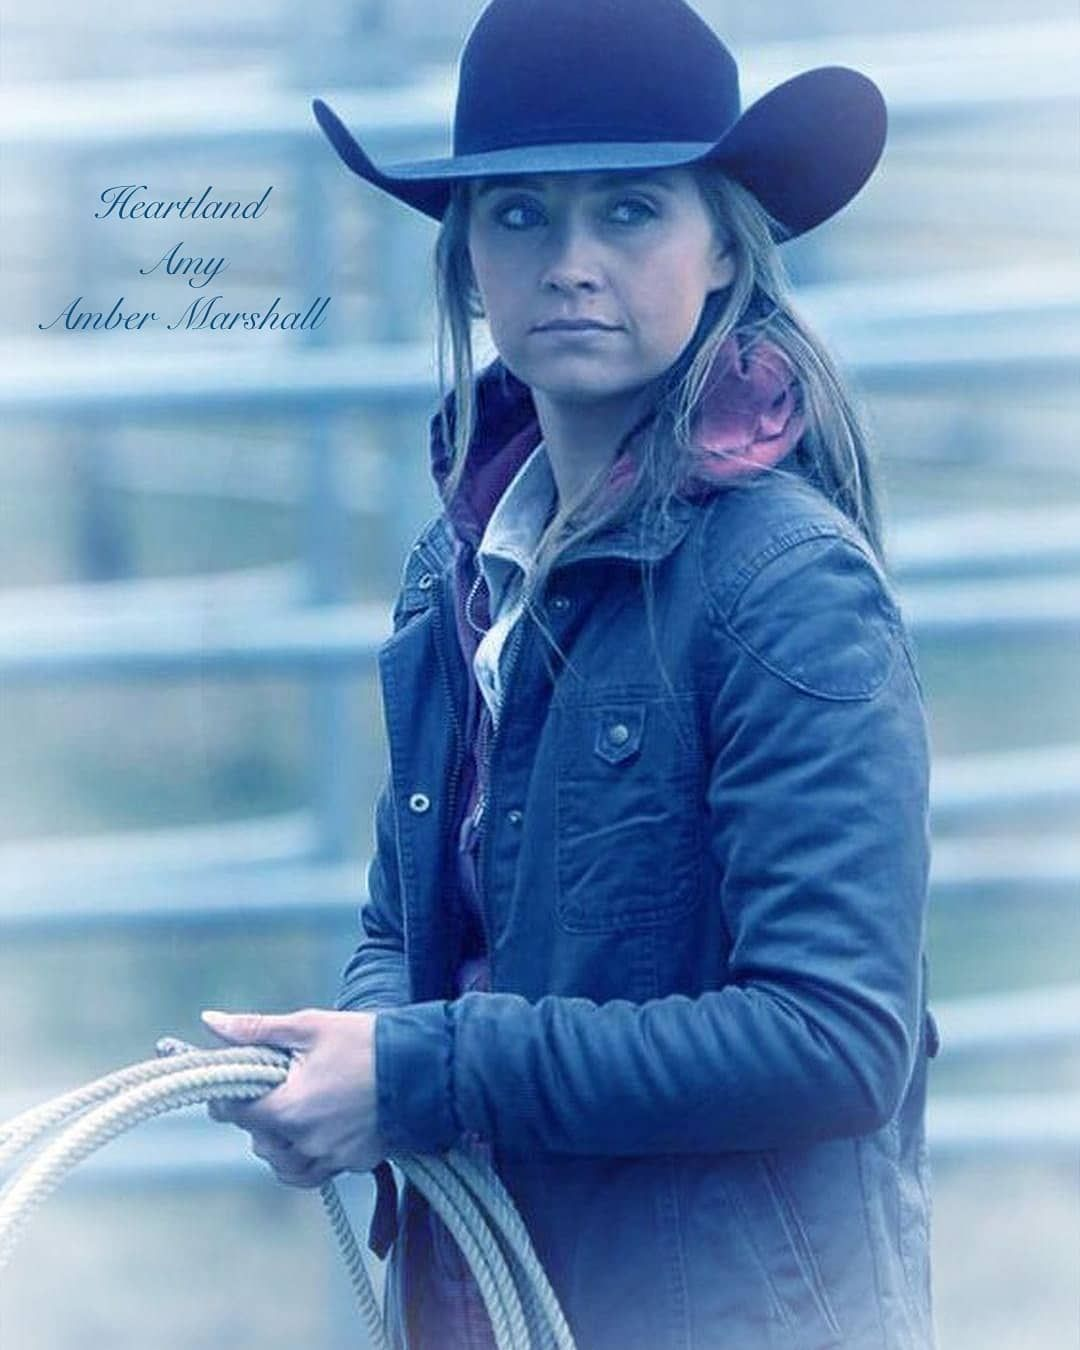 Ambermarshall Hashtag On Instagram Photos And Videos Amber Marshall Ty And Amy Western Fashion